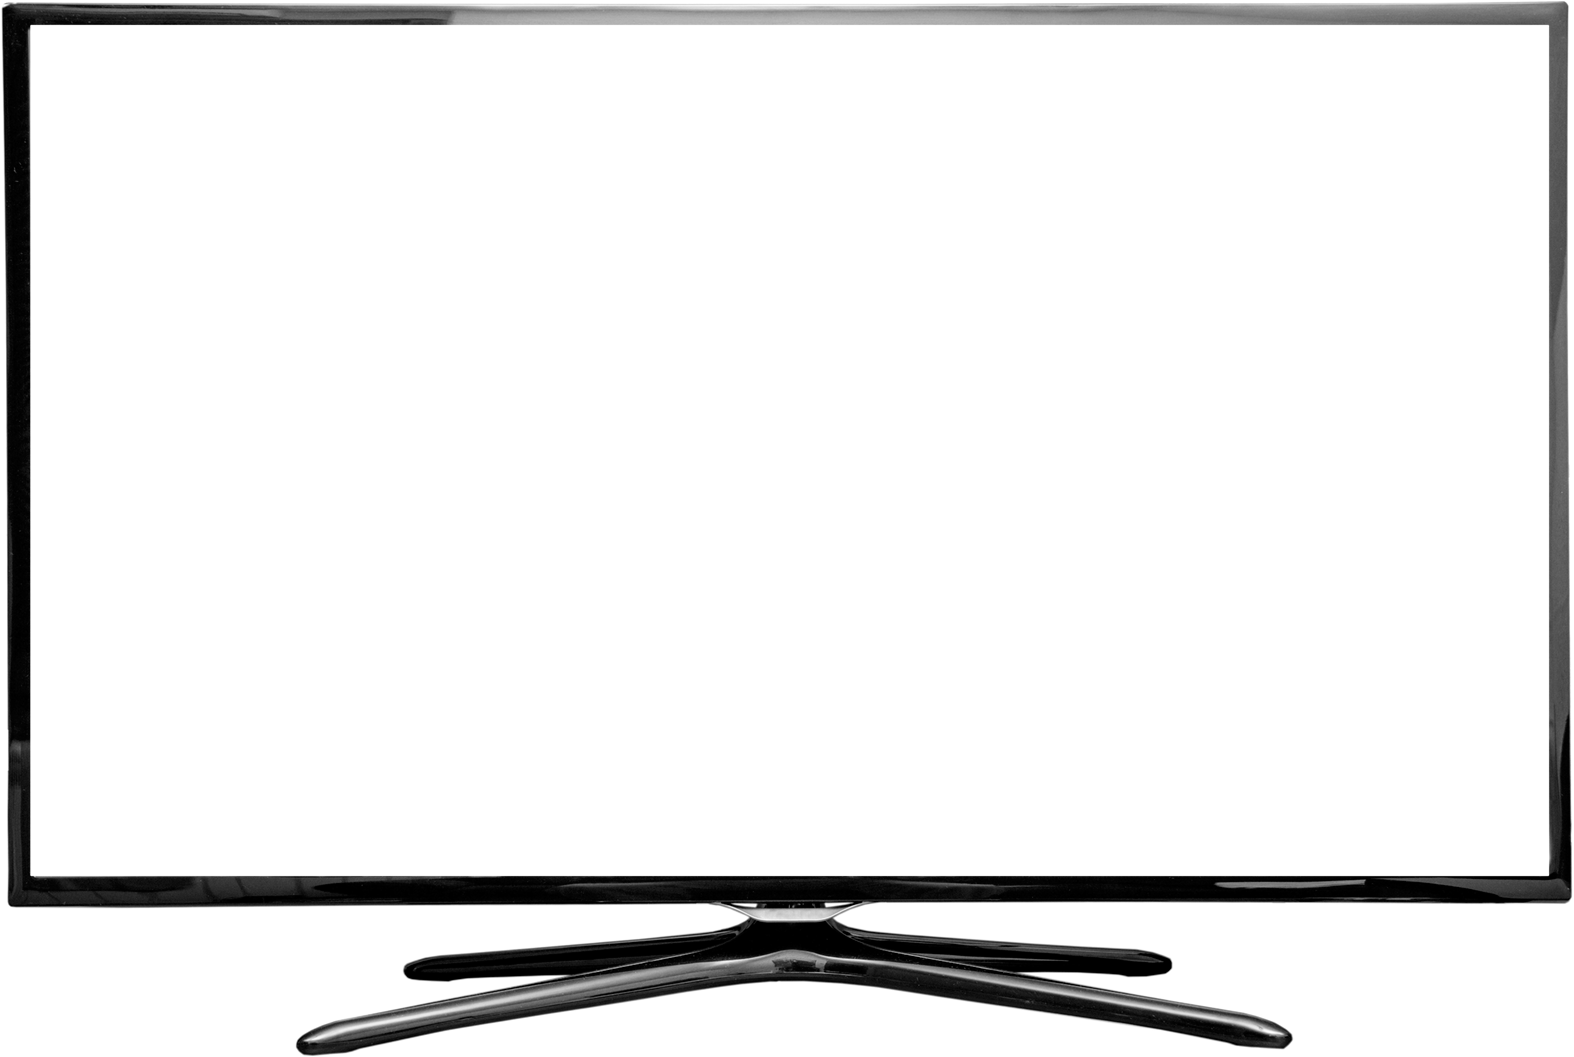 Television clipart lcd tv. Led png image purepng